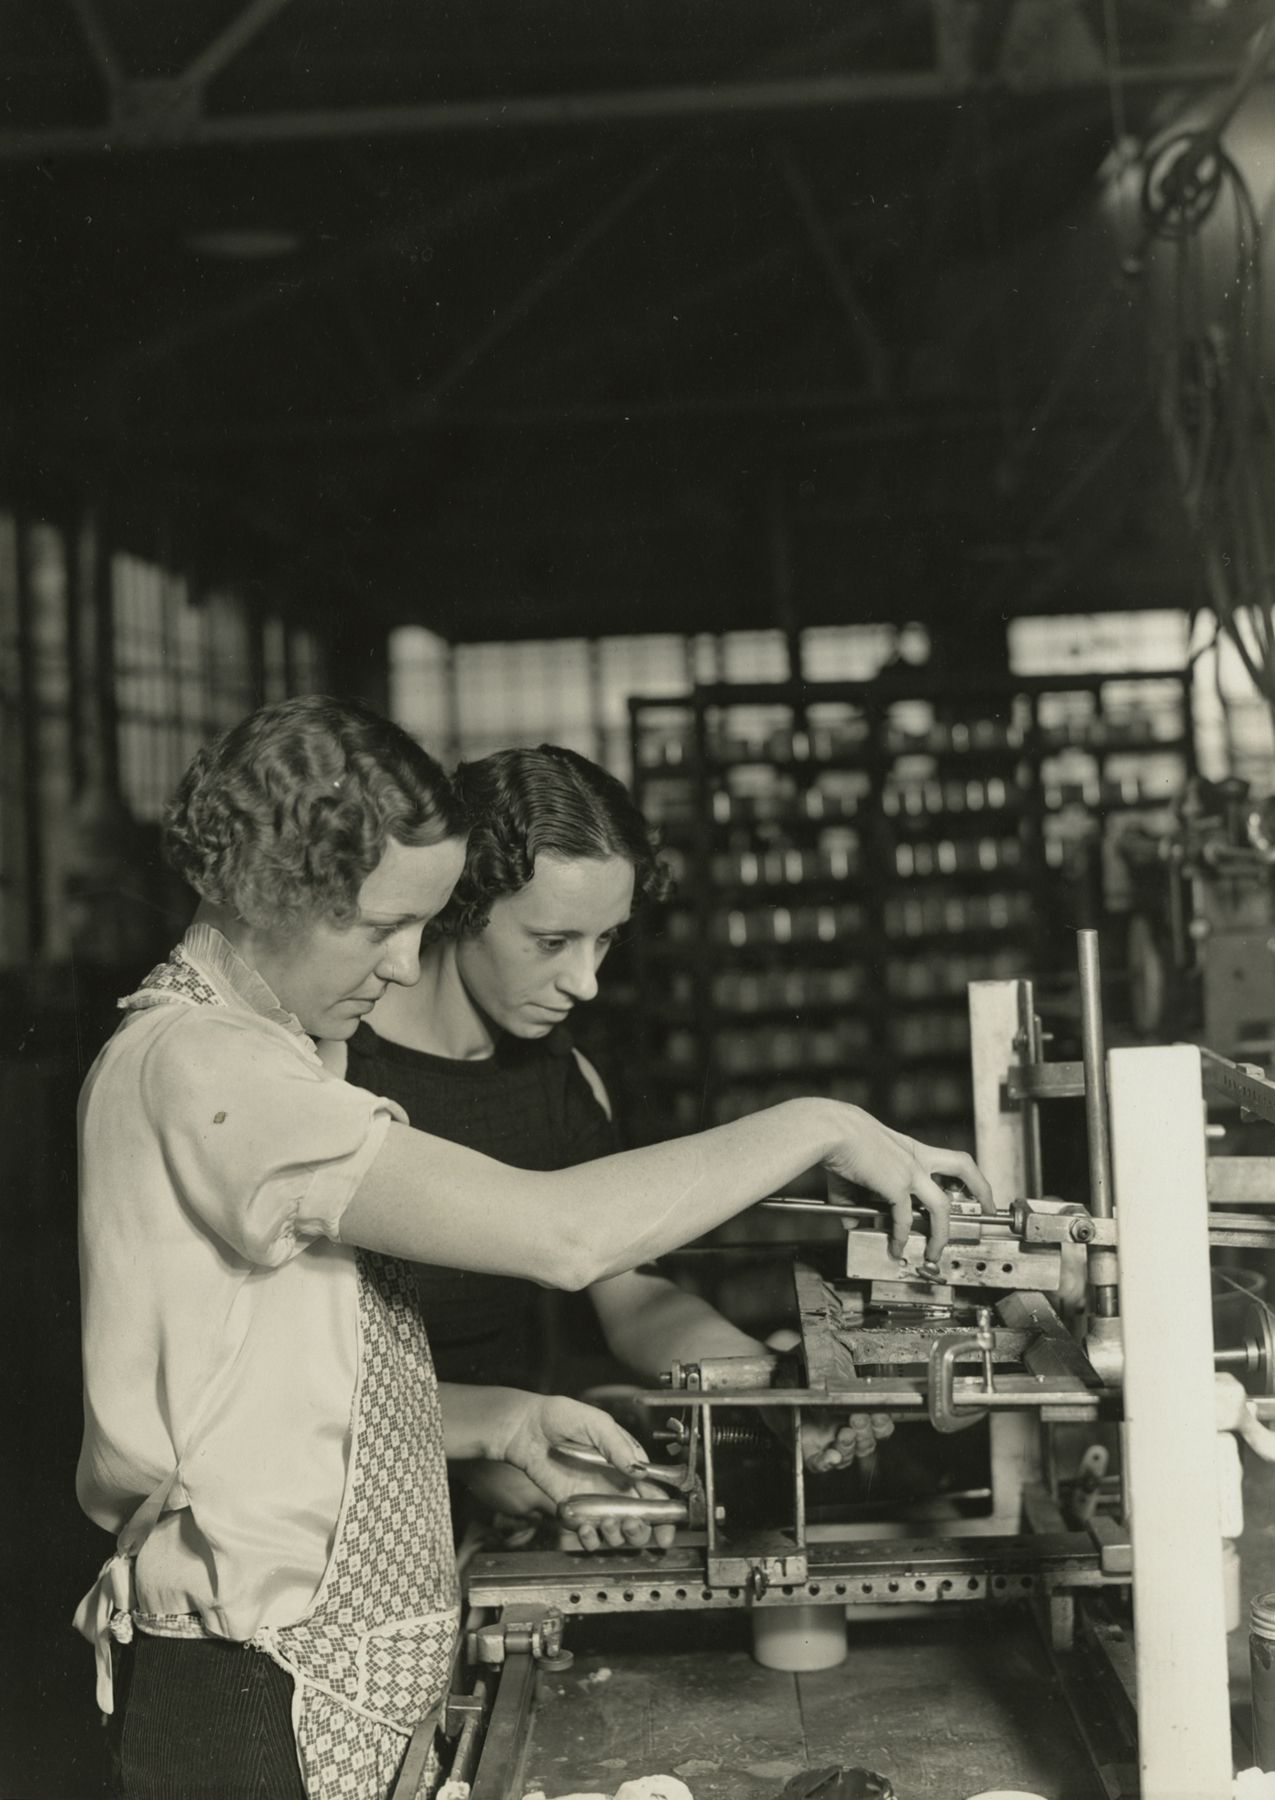 Two girls stamping glass jars in the art room at T. C. Wheaton Company. This is a stamping device developed by this company for lettering painted bottles. Ink is put under the screen in which there are perforations for the lettering, and the jar is rolled over the top of it. The girl in front is controlling the lever which presses the jar as it rolls over the screen. T.C. Wheaton Company, Millville, New Jersey, 1936-37 Gelatin silver print; printed c.1936-37